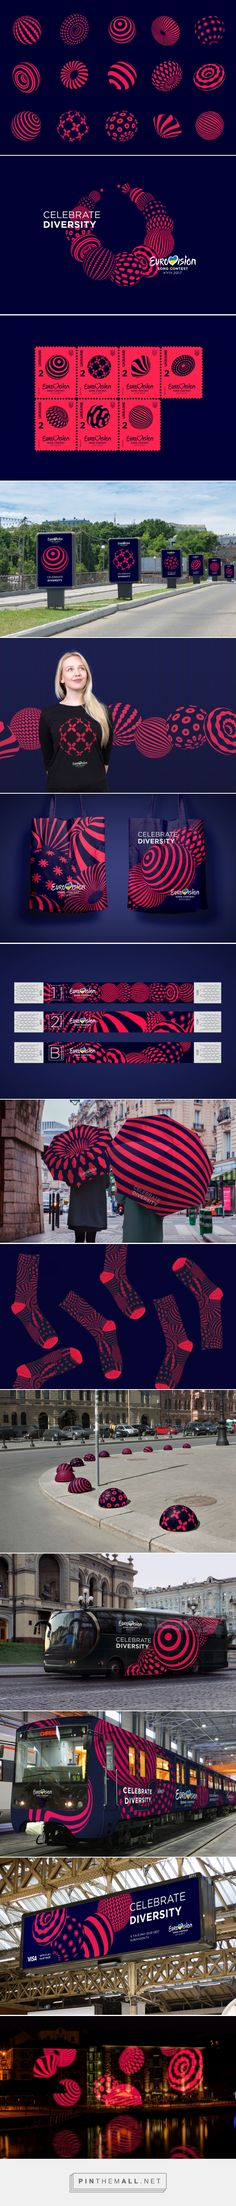 Brand New: New Logo and Identity for Eurovision Song Contest 2017 by banda.agency and Republique... - a grouped images picture - Pin Them All